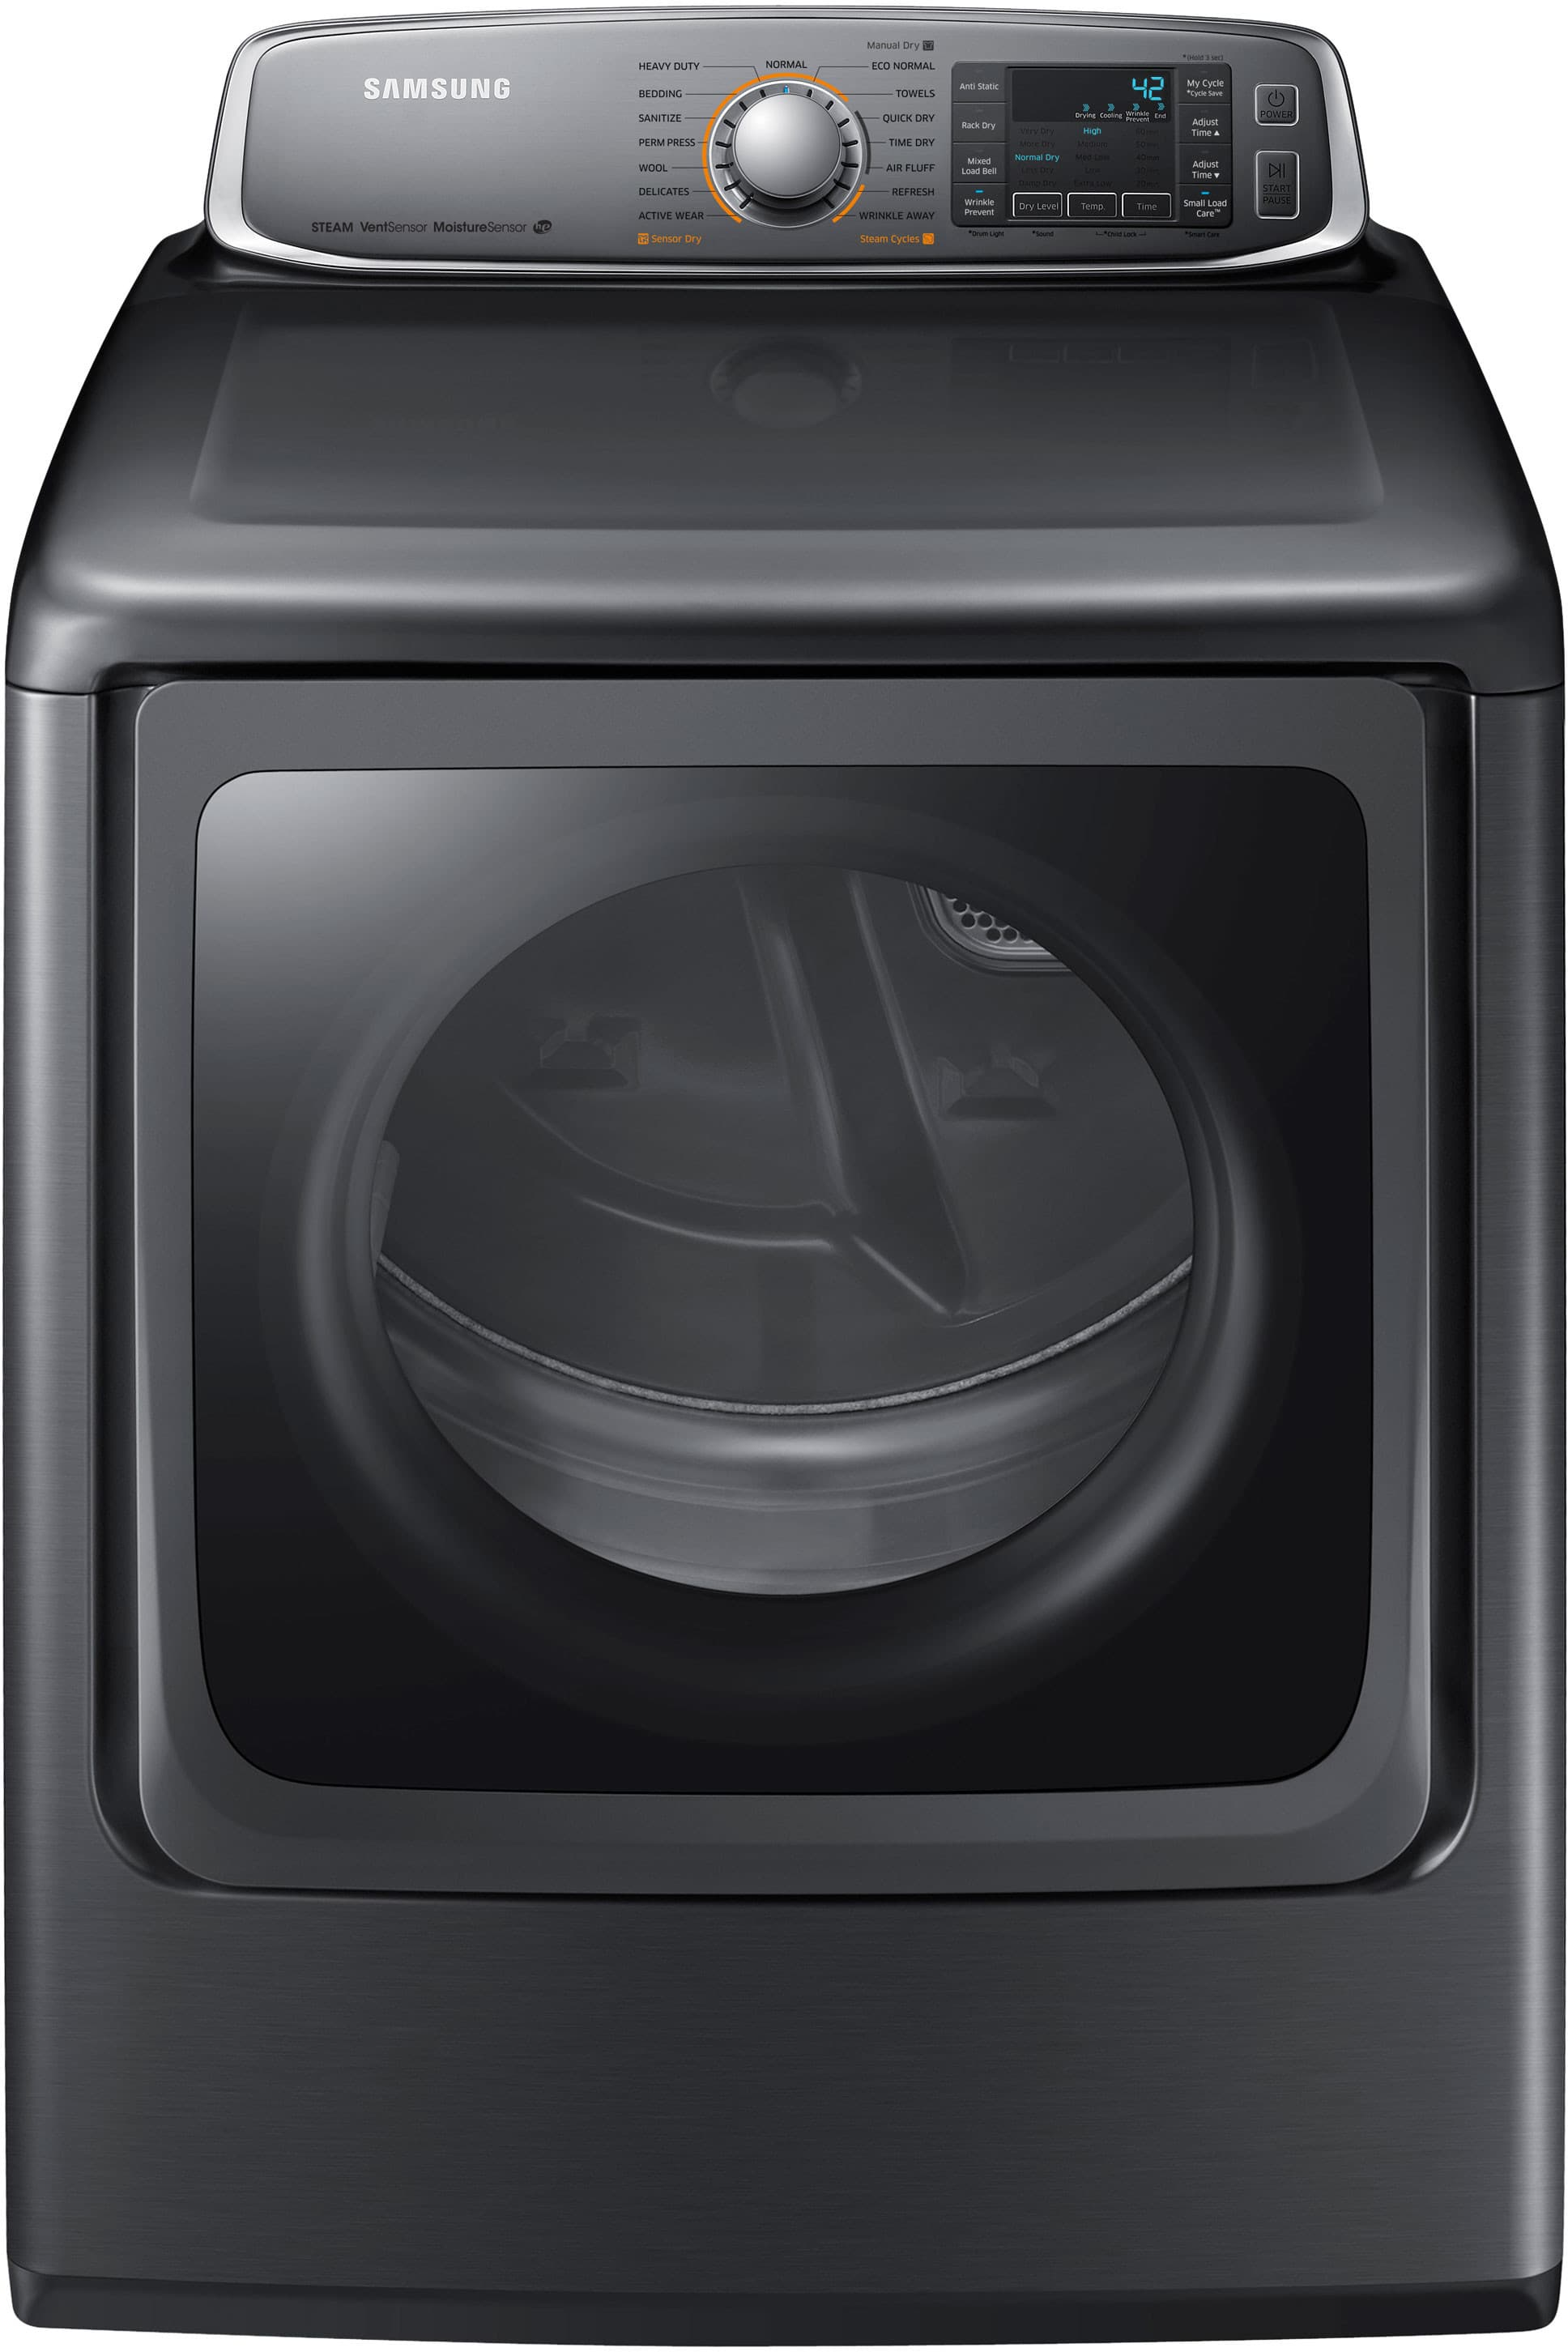 samsung dv56h9000ep 30 inch 95 cu ft electric dryer with 15 dry cycles 5 temperature settings steam vent sensor sanitize cycle wrinkle prevent